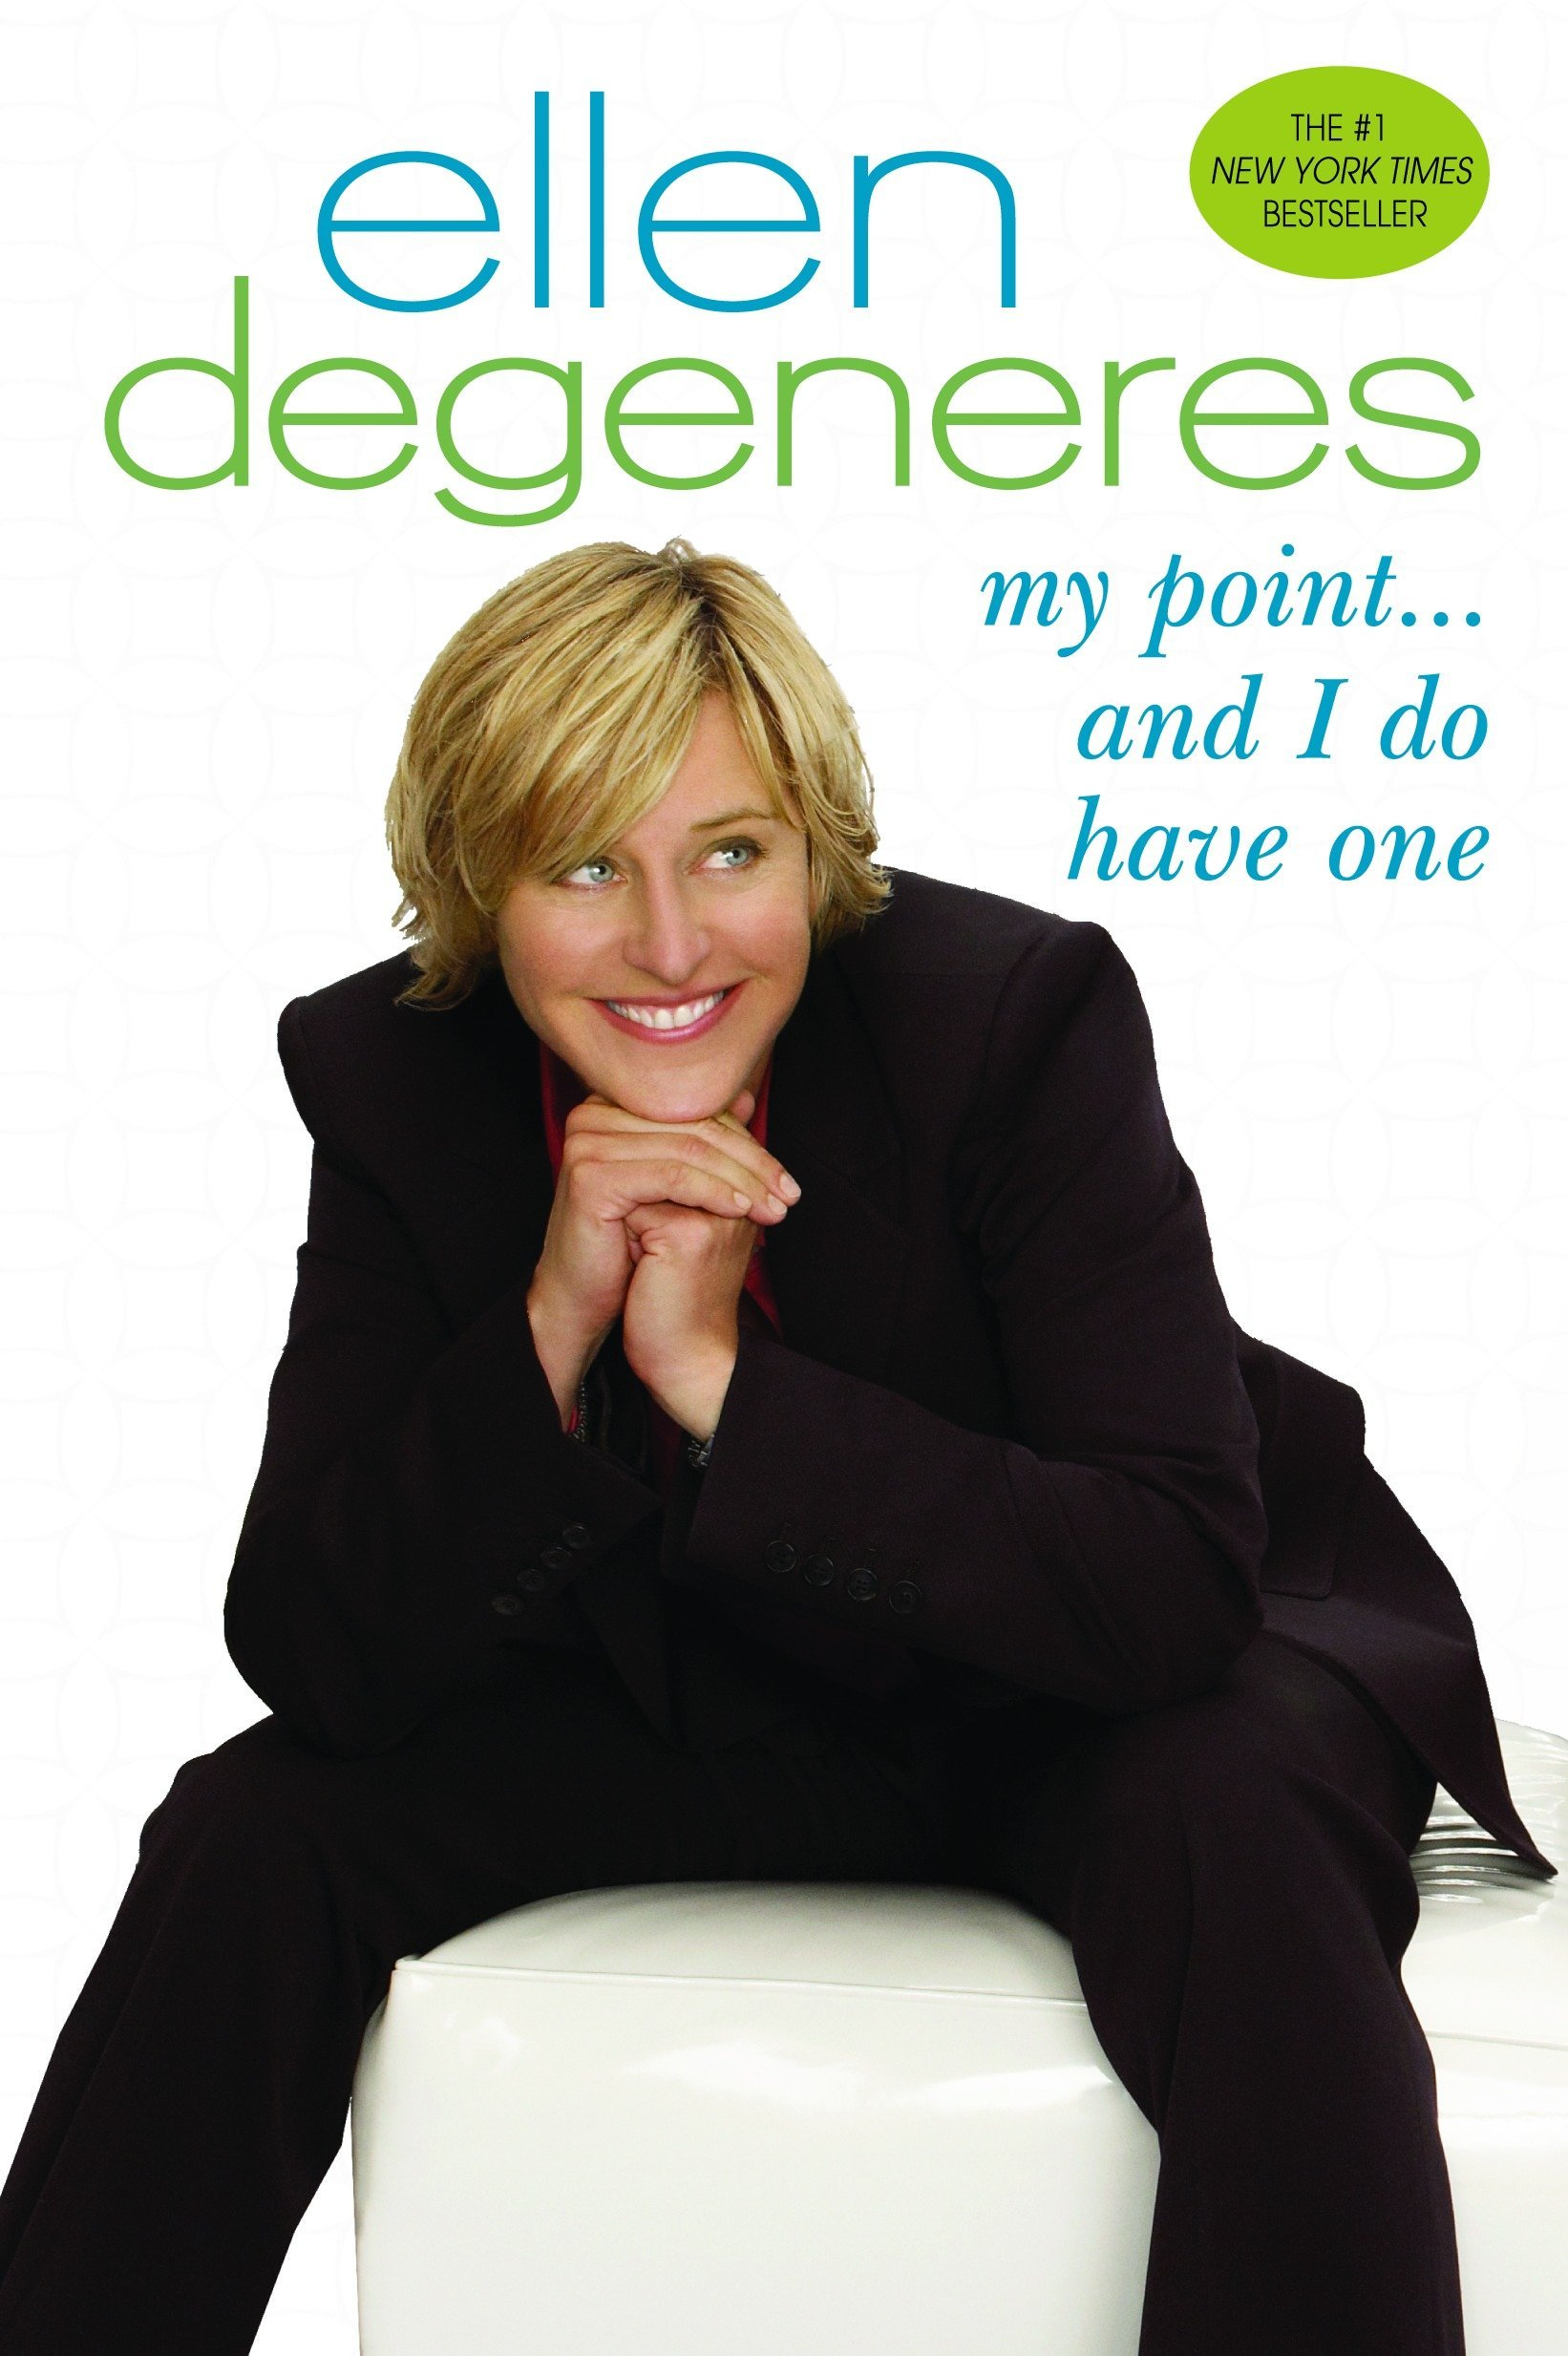 Ellen degeneres crazed fans hey lets all kill the dog hospice workers new images